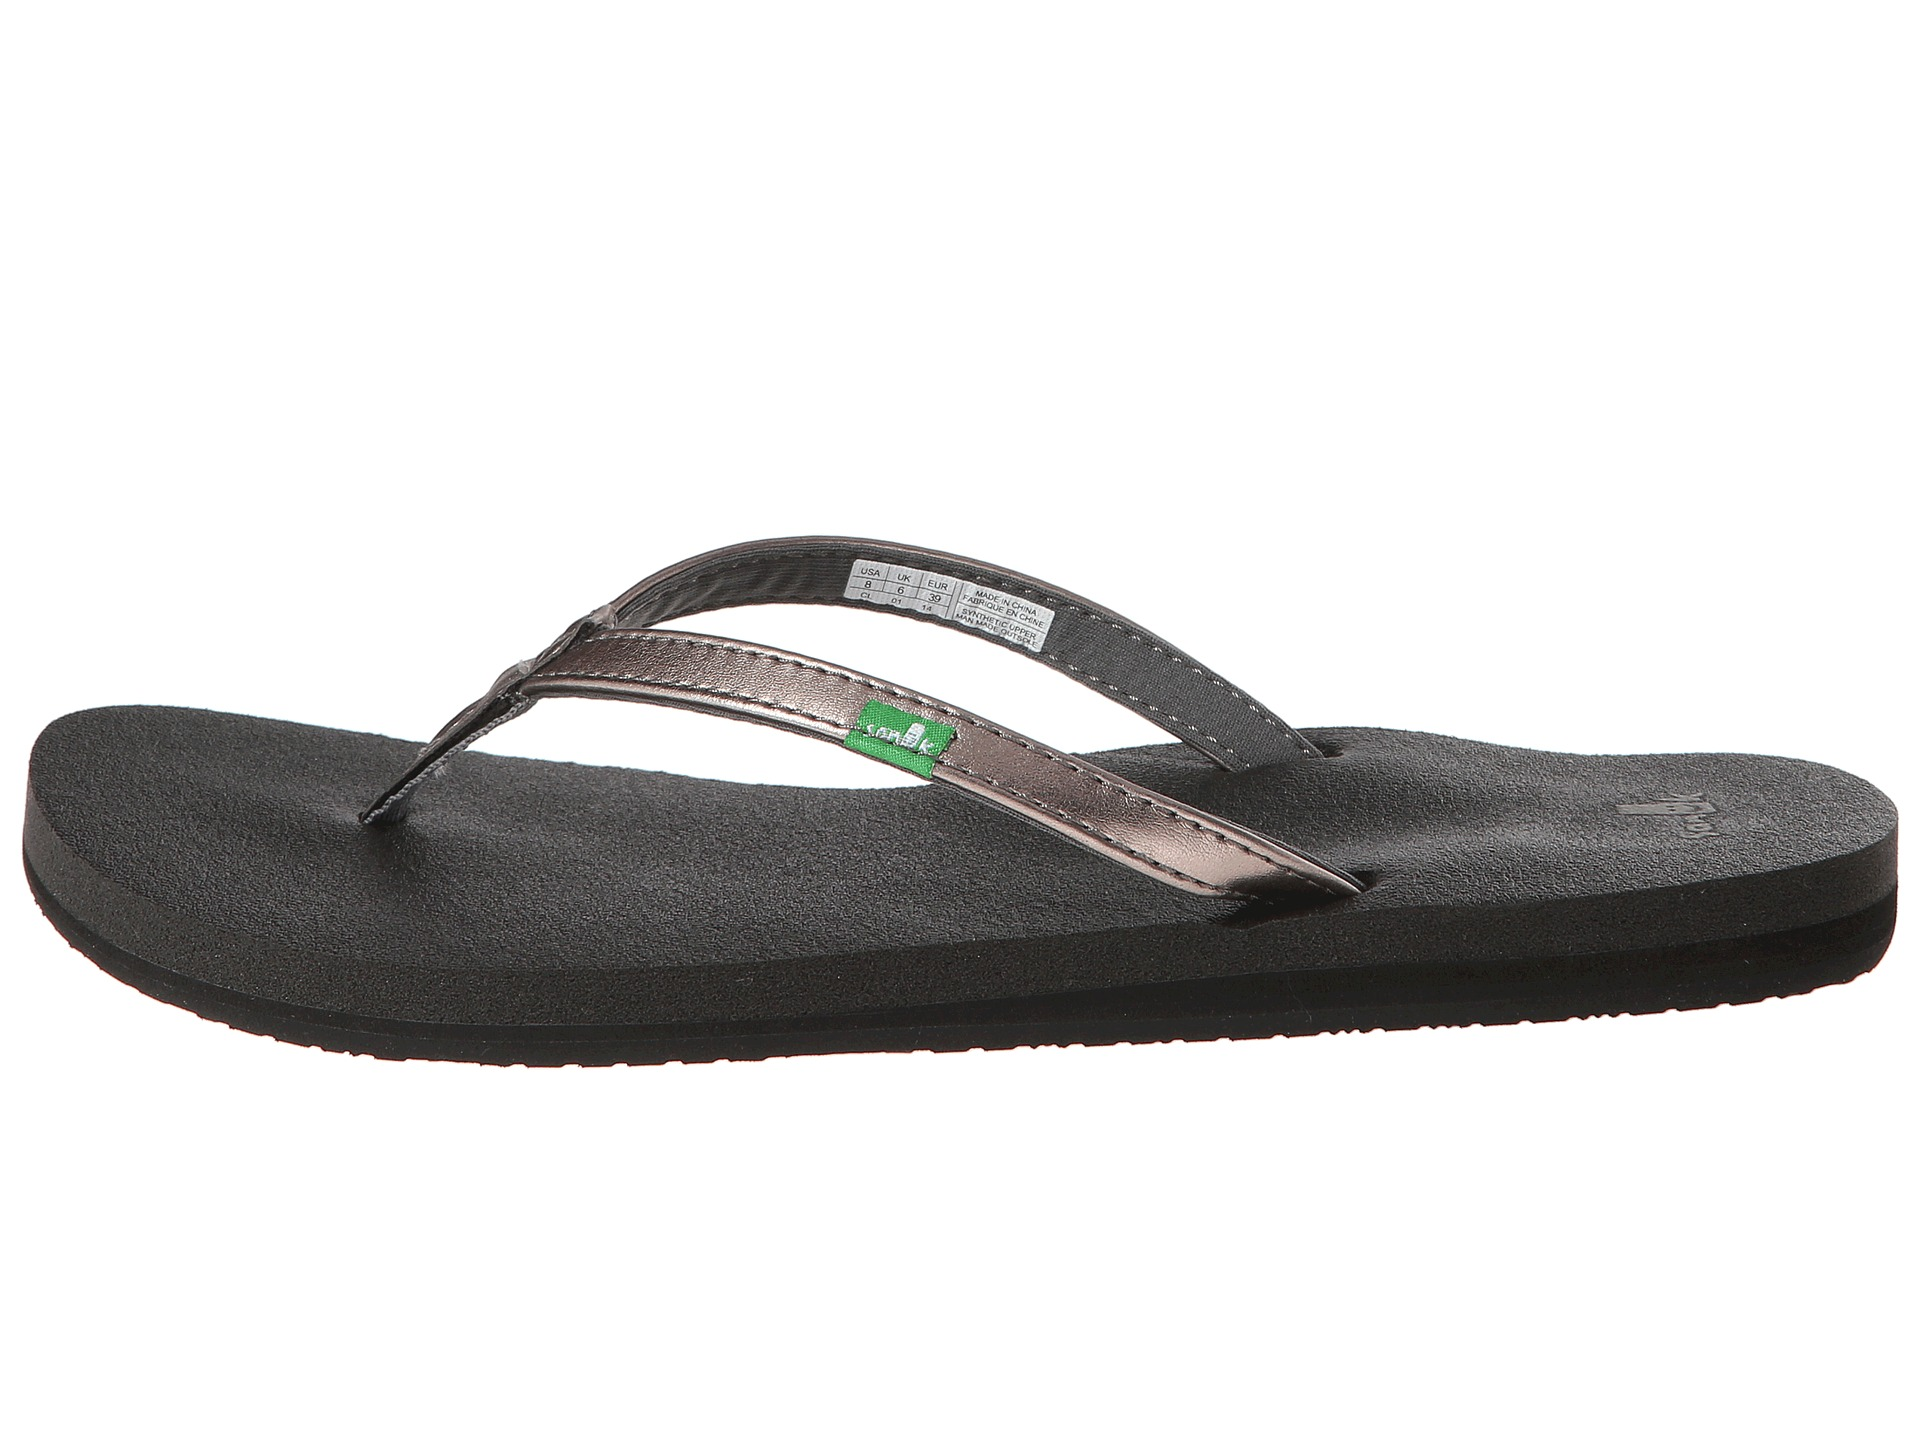 Sanuk Yoga Joy Metallic At Zappos Com